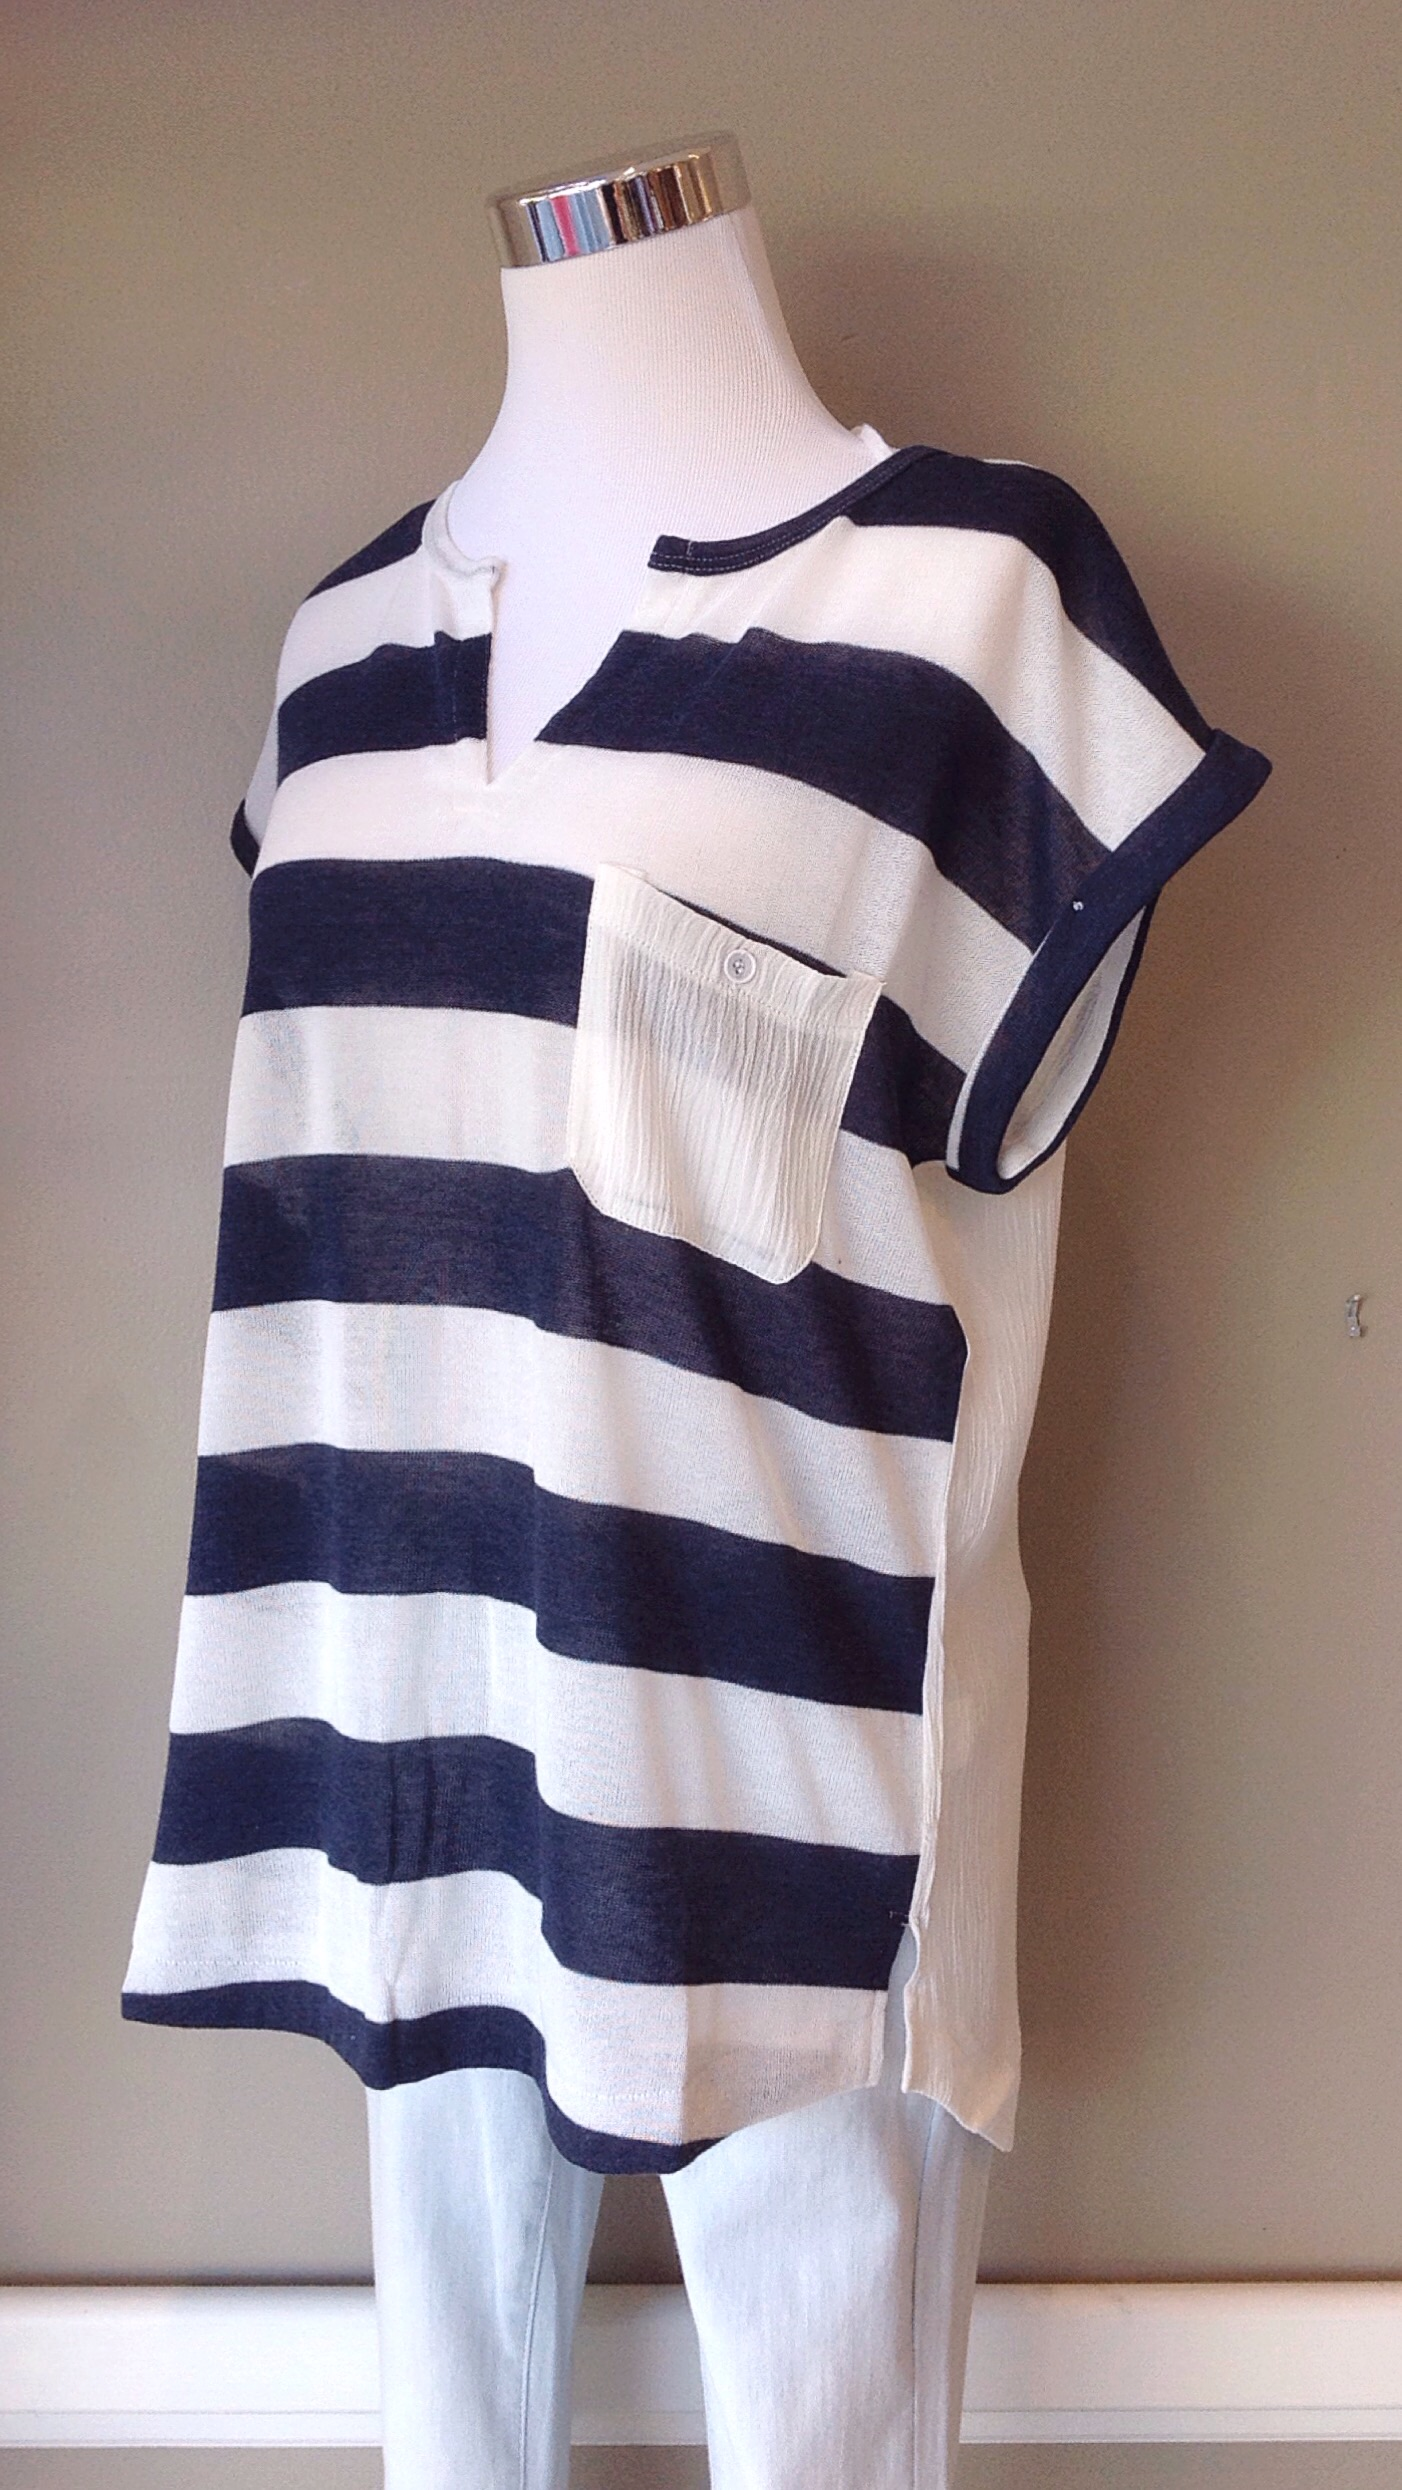 Knit short sleeve top in navy and white stripe, $32